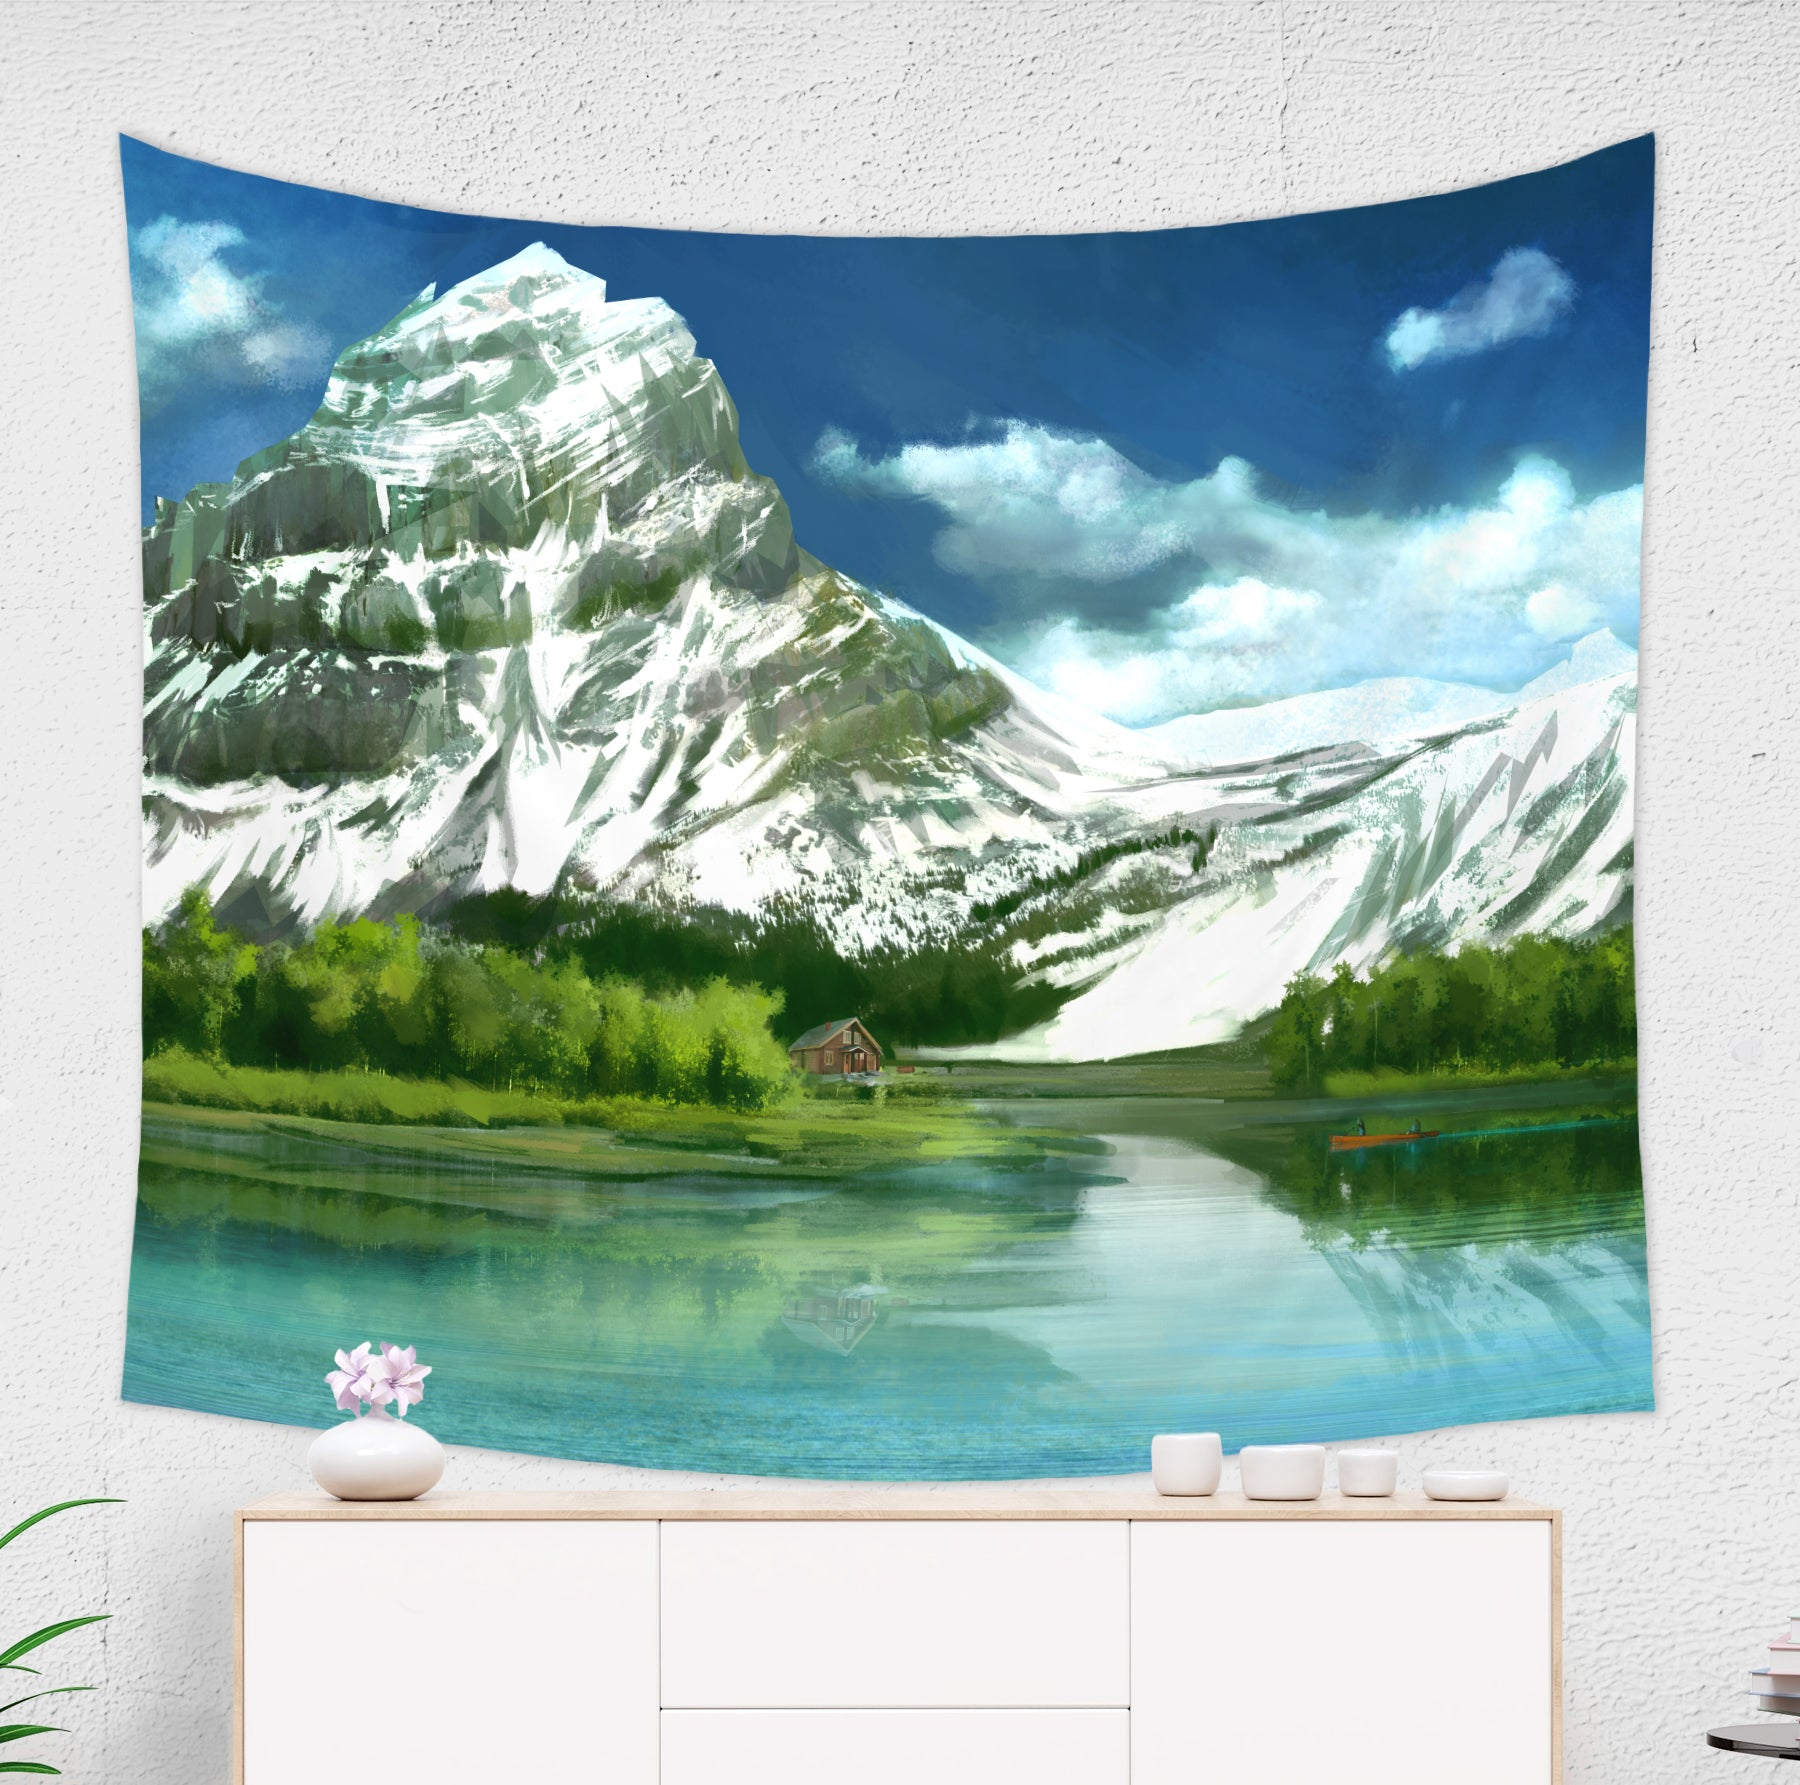 Mountain Landscape Tapestry for Hikers with Lake and Boat in Blue and Green | Brandless Artist